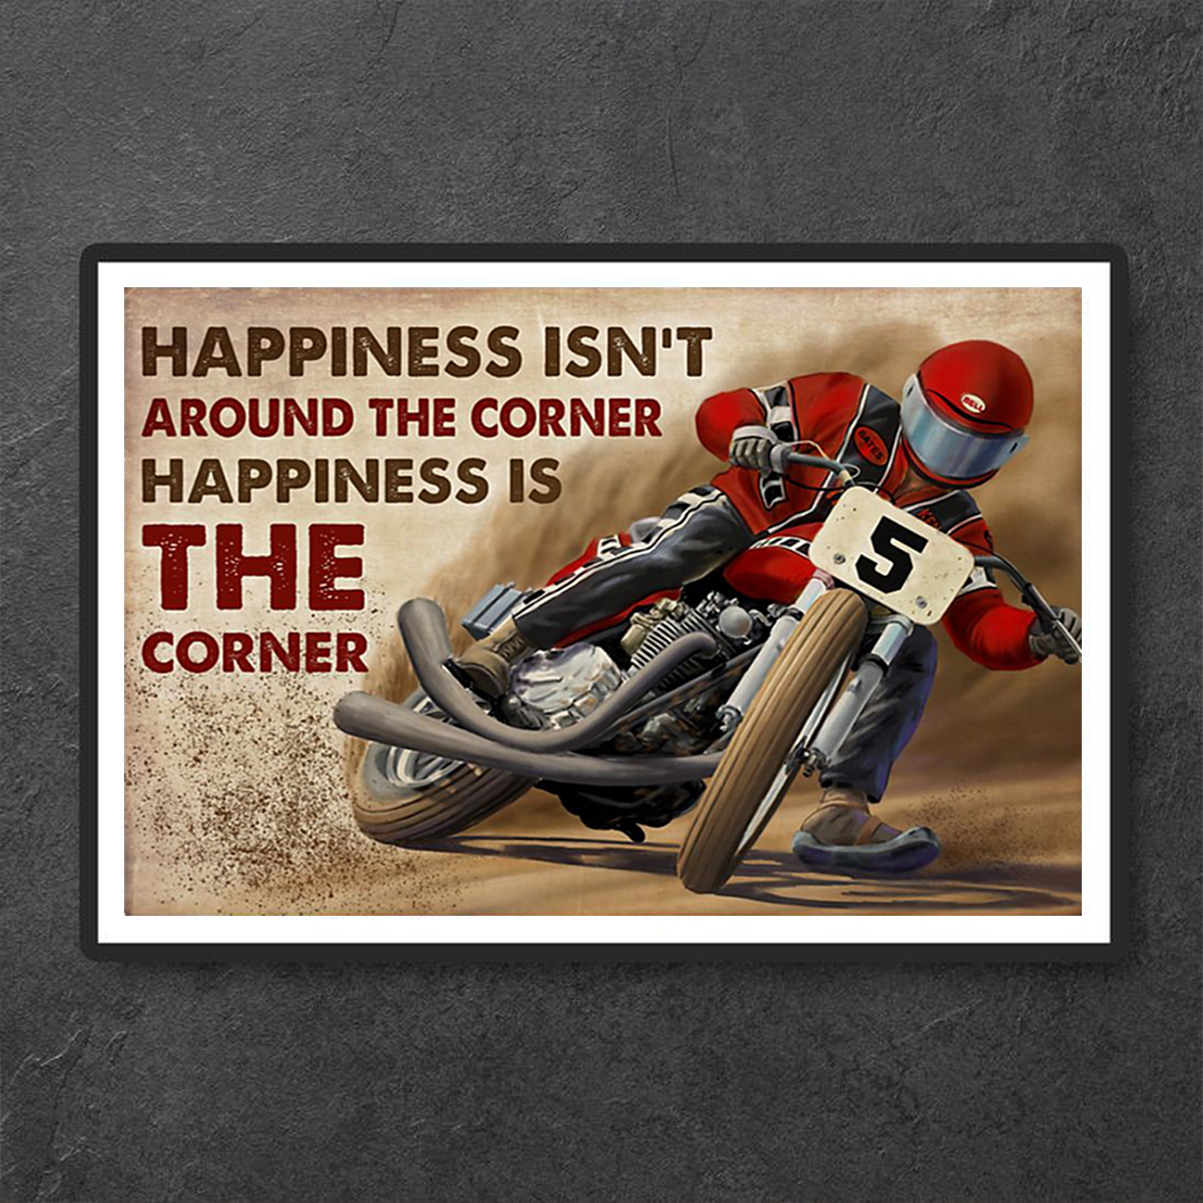 Flat track racing happiness isn't around the corner poster A3